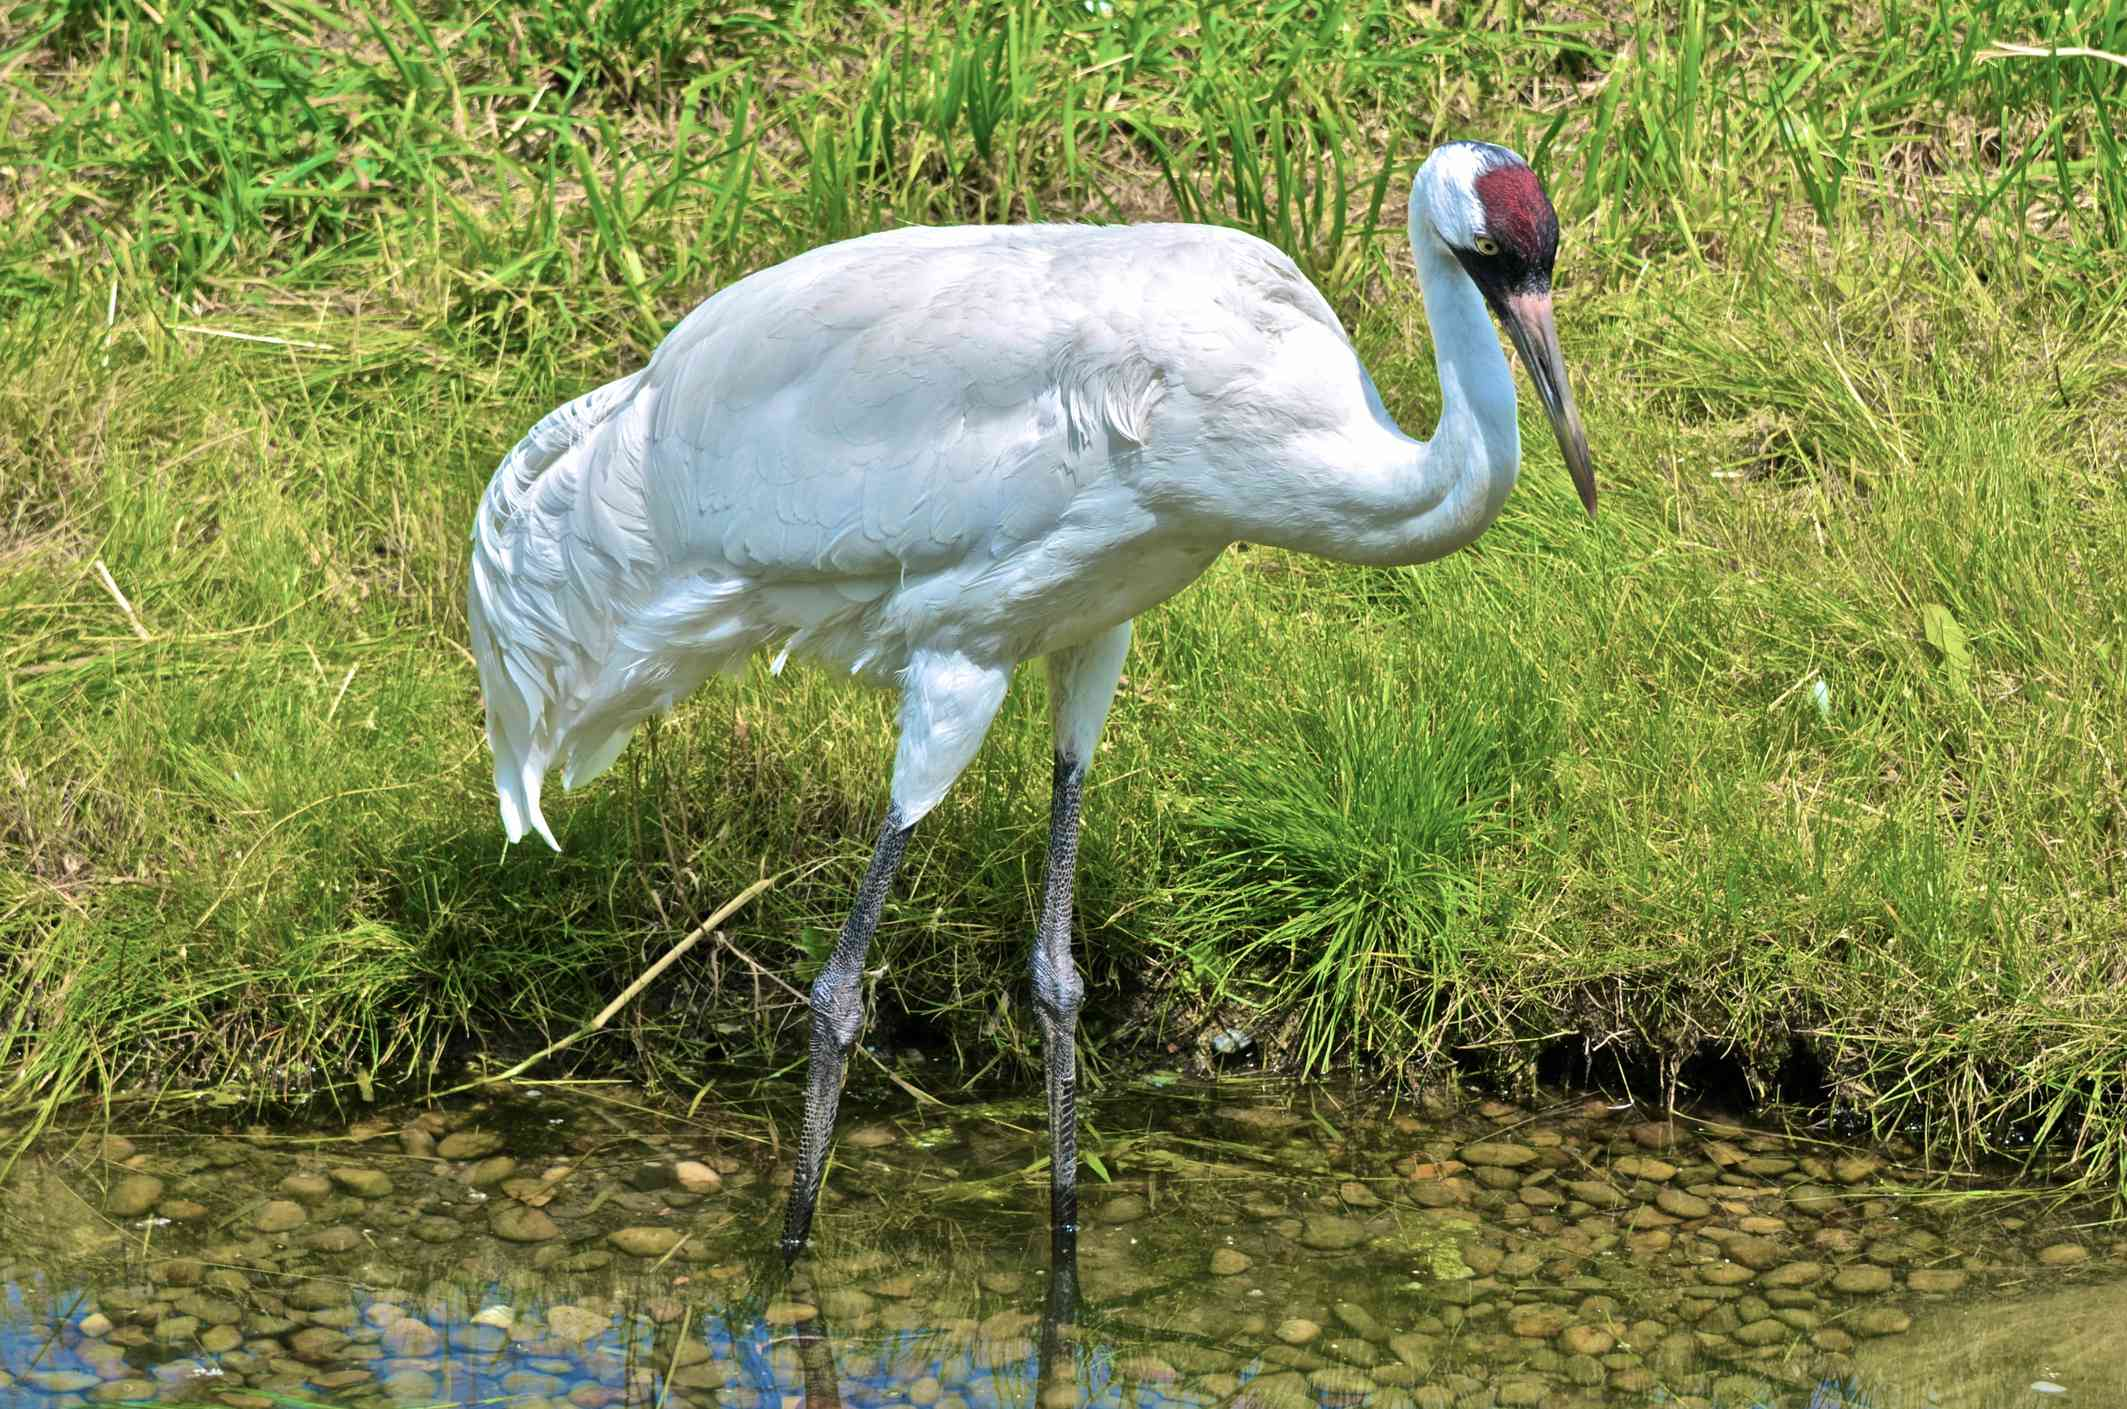 A whooping crane with its standing in shallow water near grass